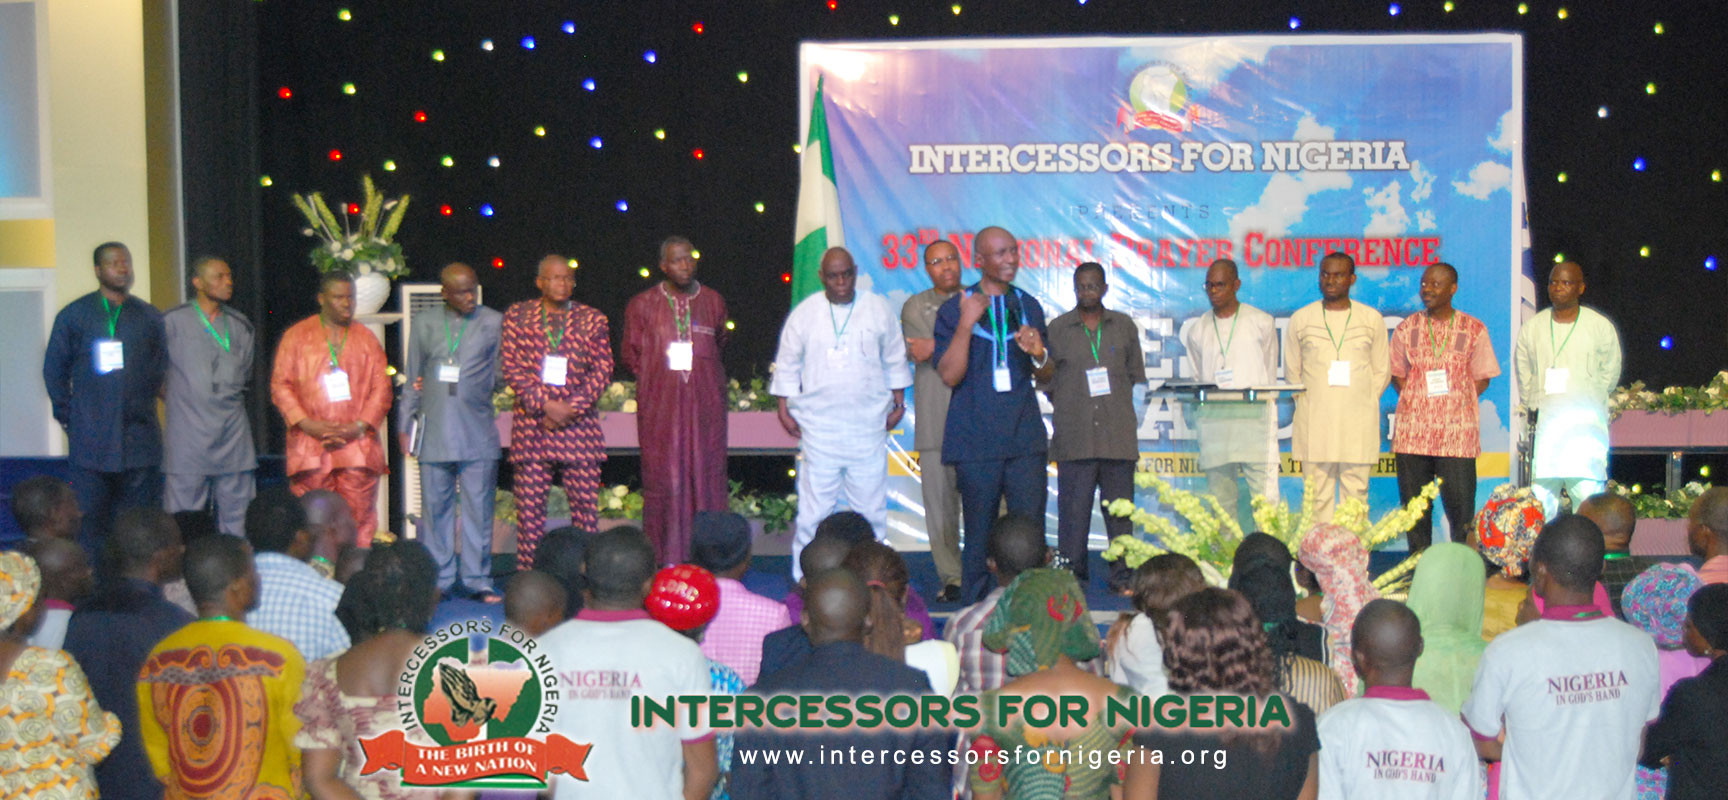 The IFN Executives deliver a brief History, stating the Corporate Vision, Mission & Objectives of the Organization then encourages New Comers to be devoted to the work of God.